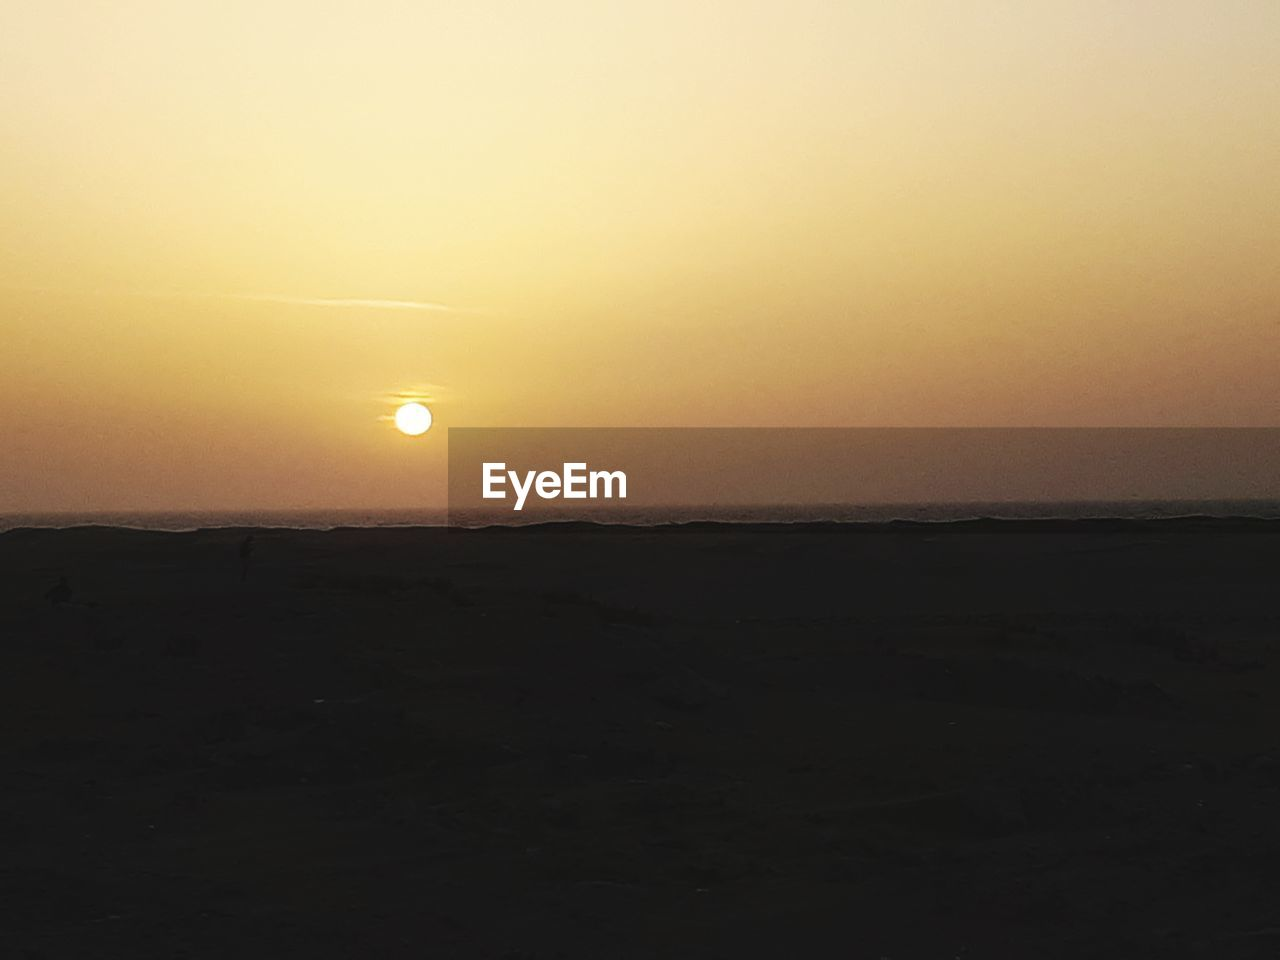 sky, sunset, scenics - nature, beauty in nature, sun, tranquil scene, tranquility, orange color, silhouette, copy space, non-urban scene, idyllic, environment, landscape, nature, no people, clear sky, land, horizon, outdoors, arid climate